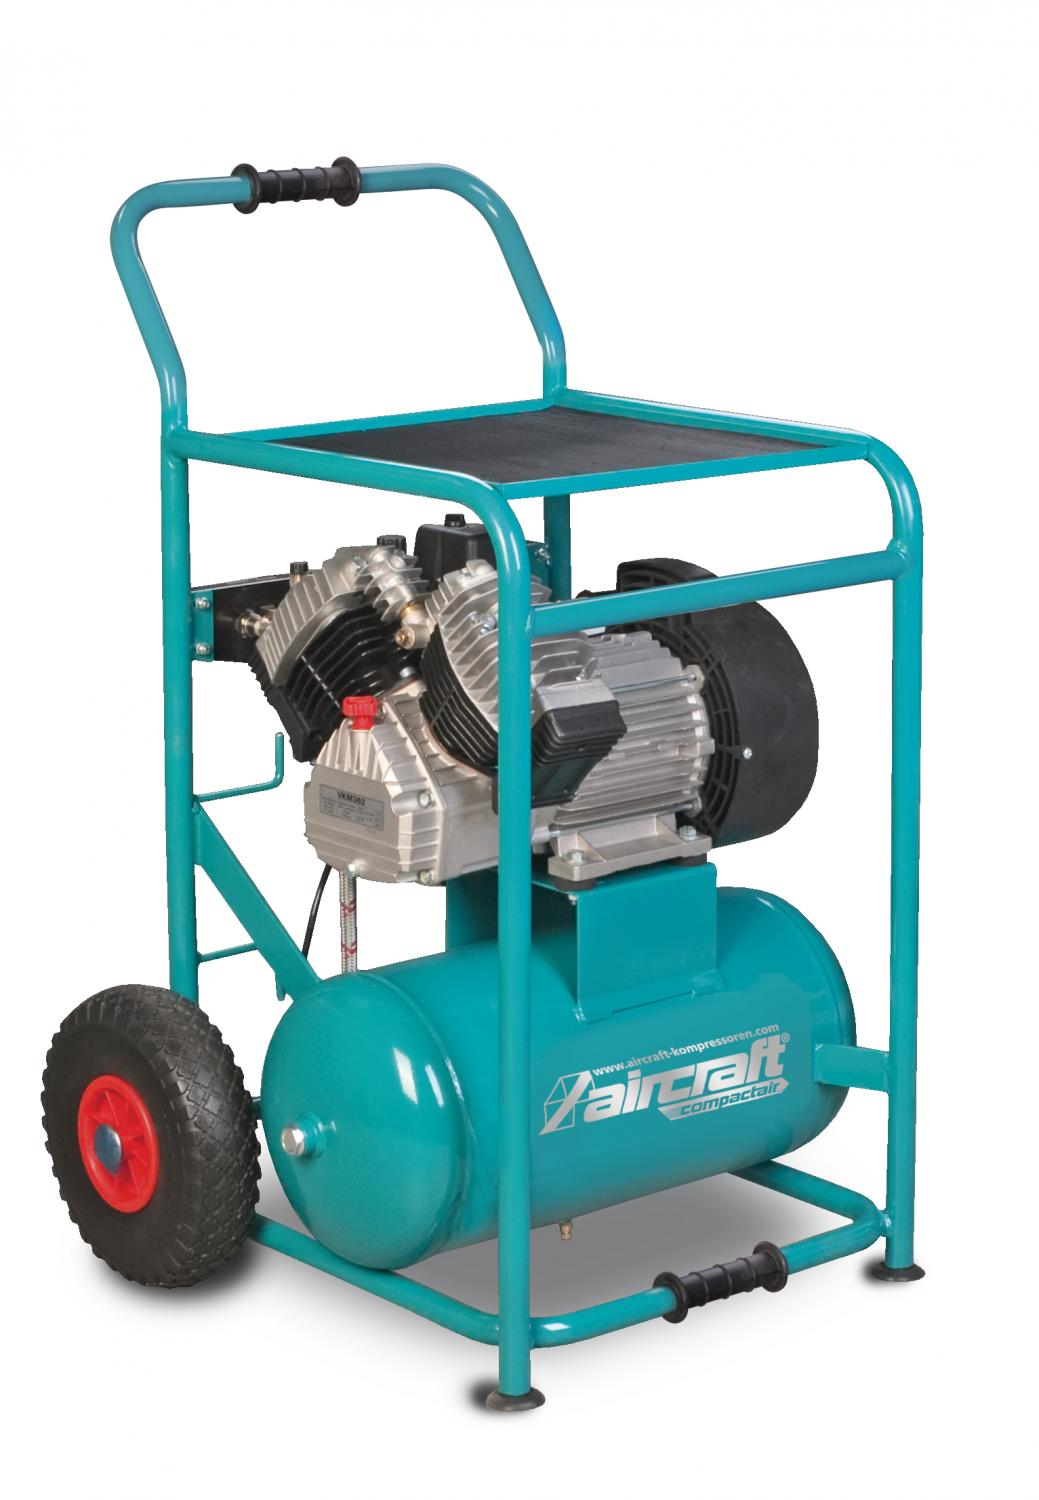 COMPACT-AIR 321/24 PRO